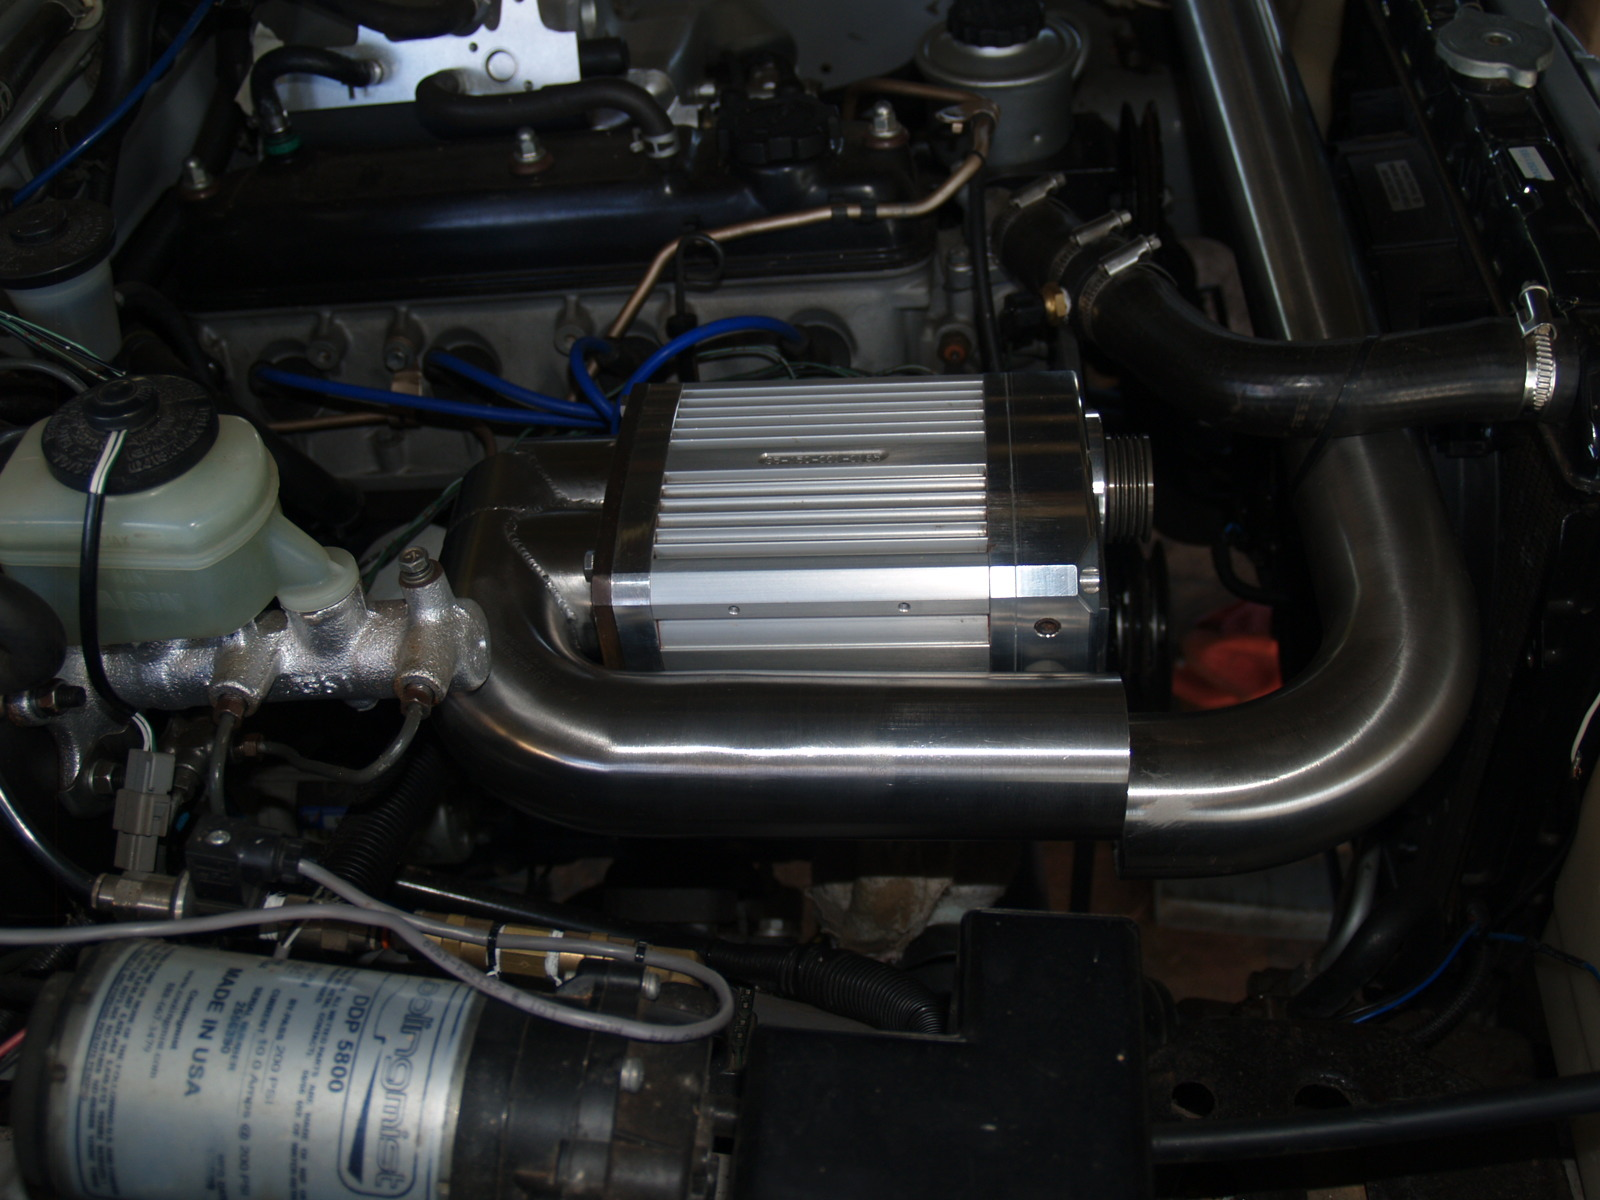 4y Supercharger Toyota Supercharged Rebuild Engine Timing Marks This Is Why I Opted For Davis Craig Electric Water Pump Thermo Fan